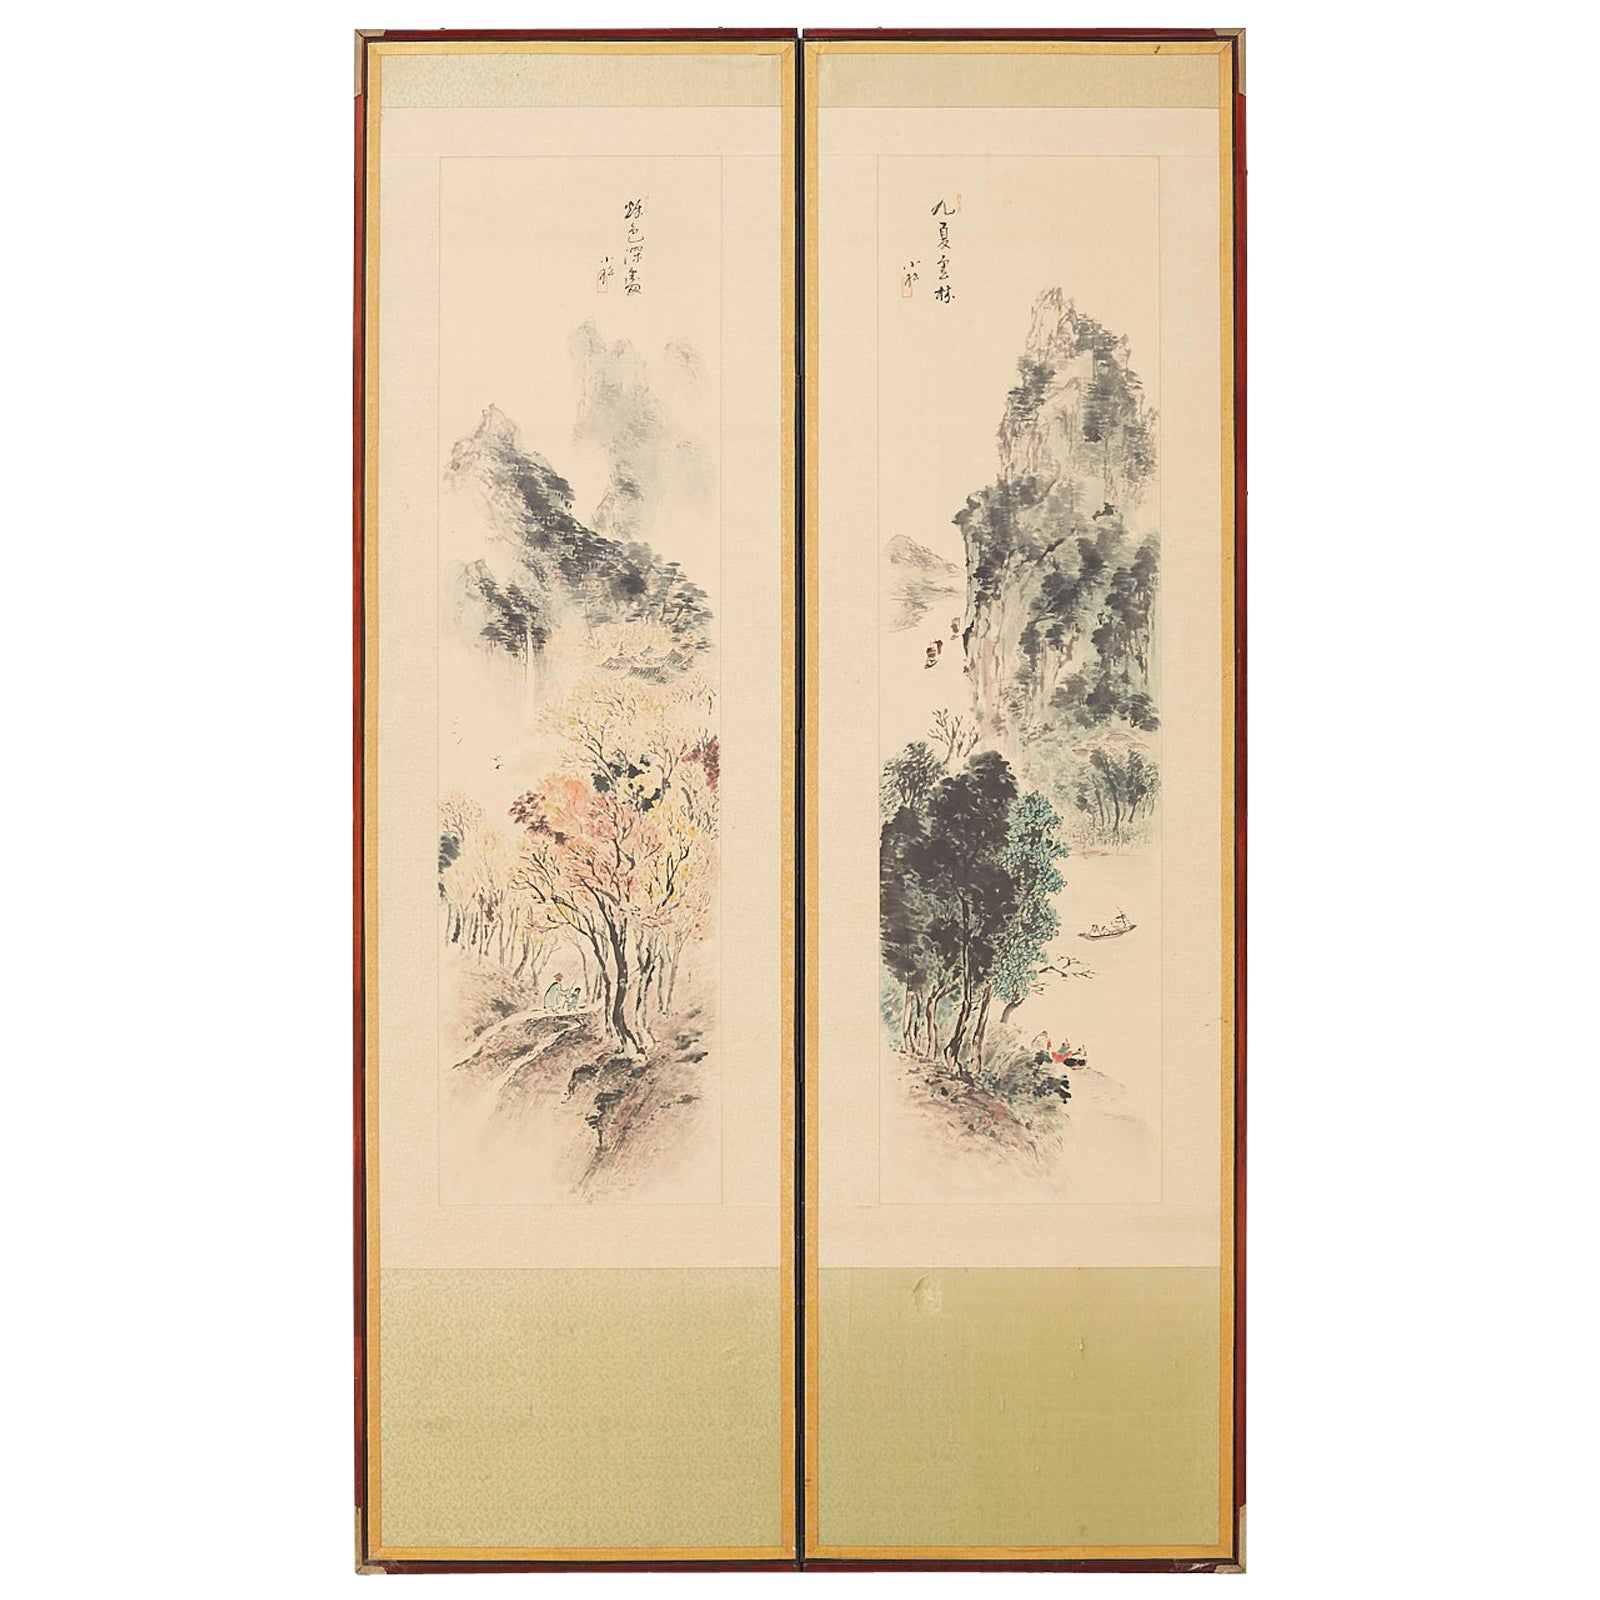 Japanese Two-Panel Screen Summer and Autumn Landscapes